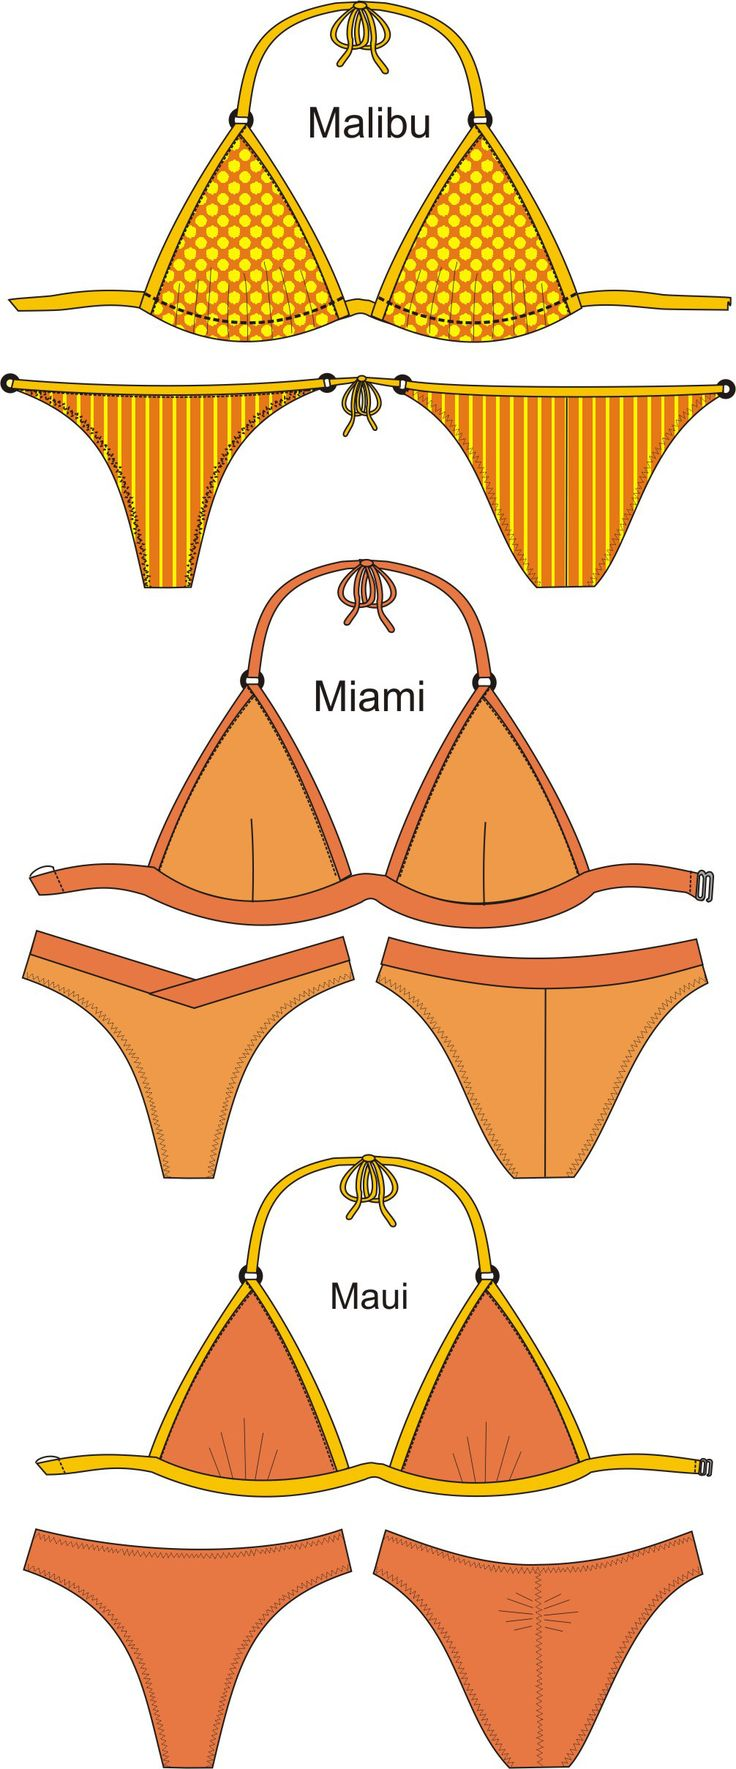 Sewing patterns for the 3 Classic Triangle bikini tops and 3 tangas bottoms in seven sizes. Choice of all-fabric, cut-and-sew foam or pre-formed foam cups for the tops!